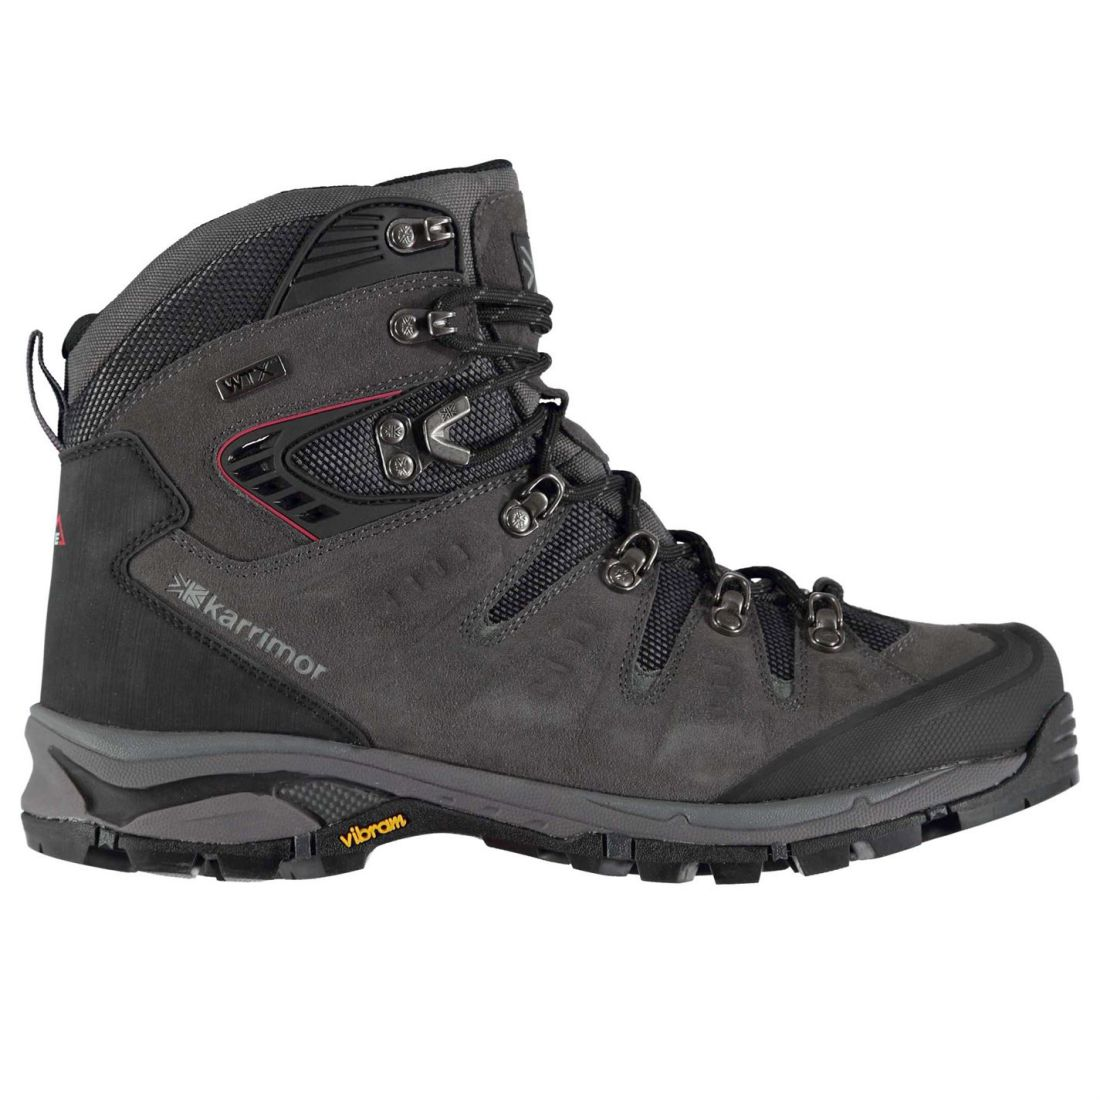 Karrimor Leopard Walking Boots Mens Gents Laces Fastened Ventilated Water